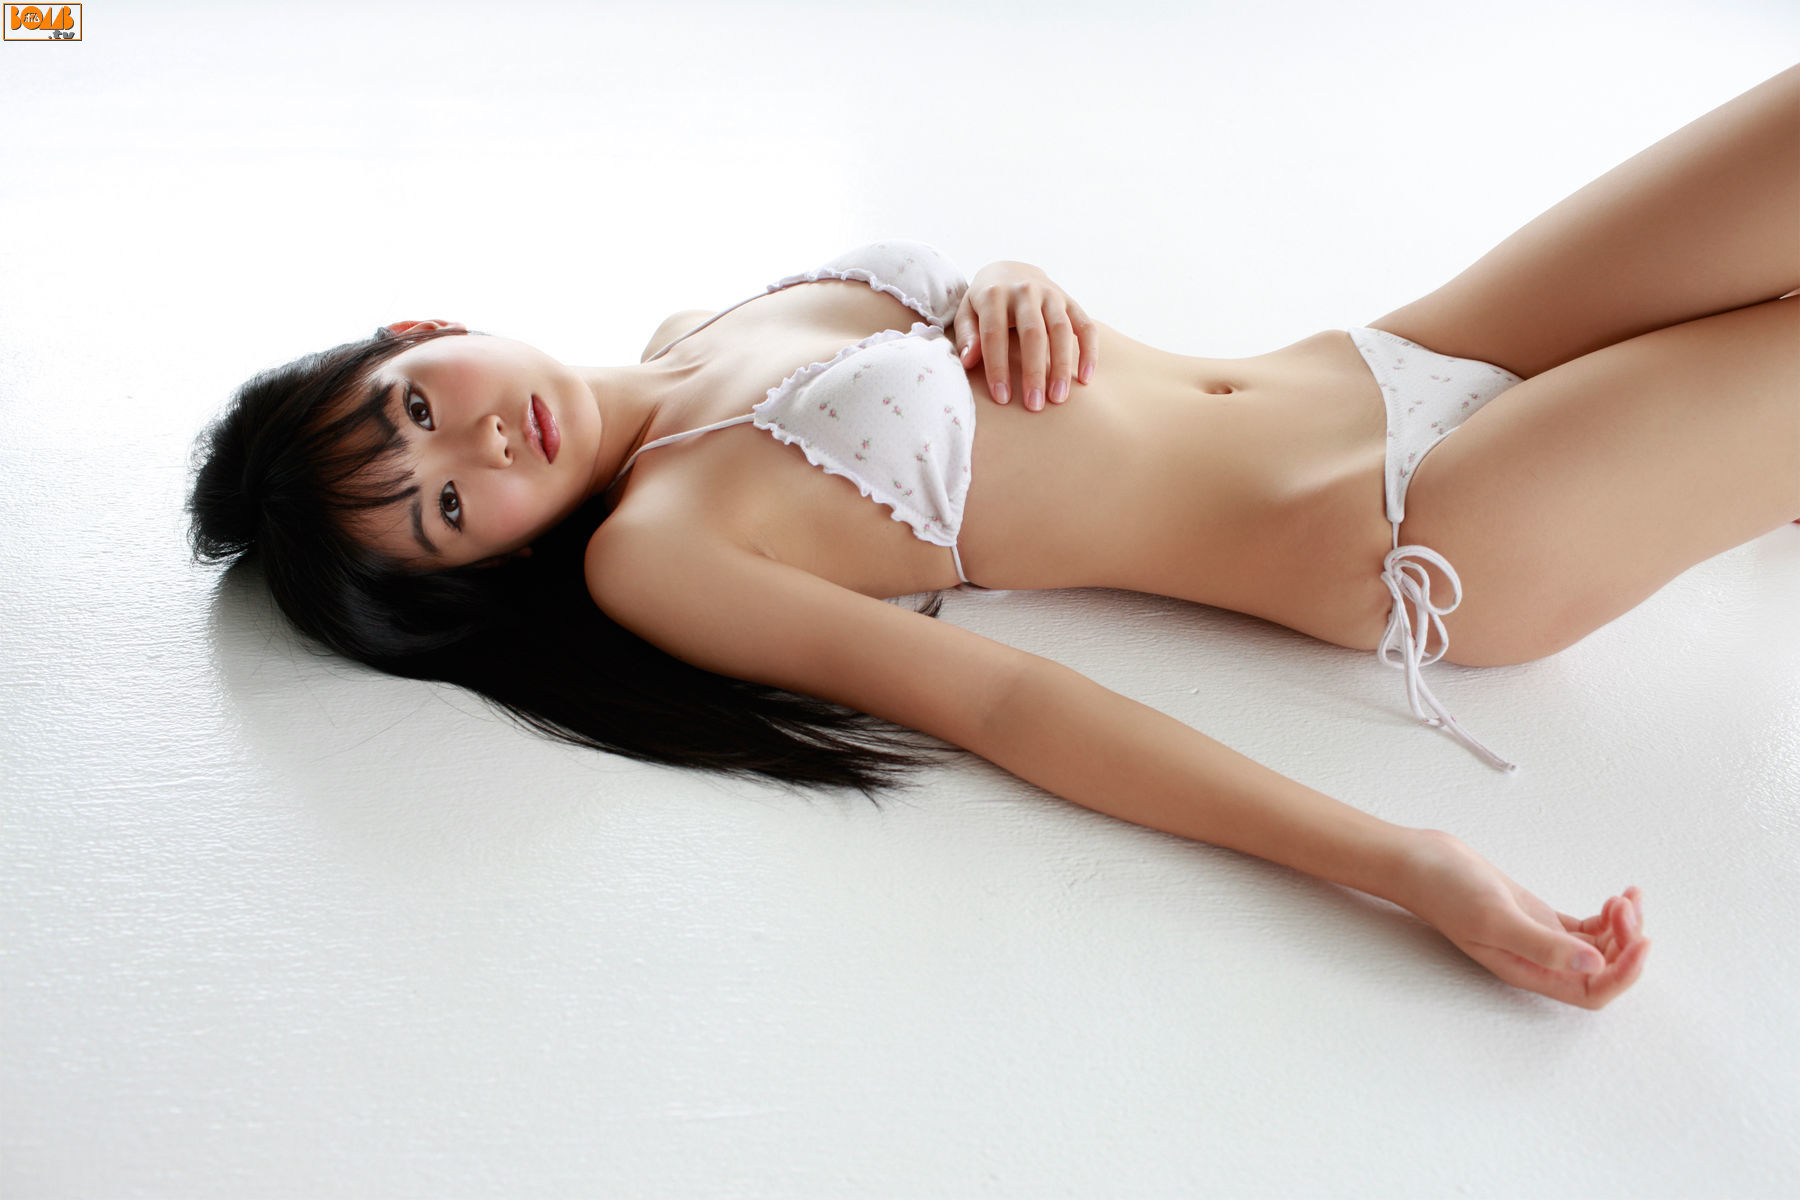 The ultimate swimsuit gravure for the next generation012